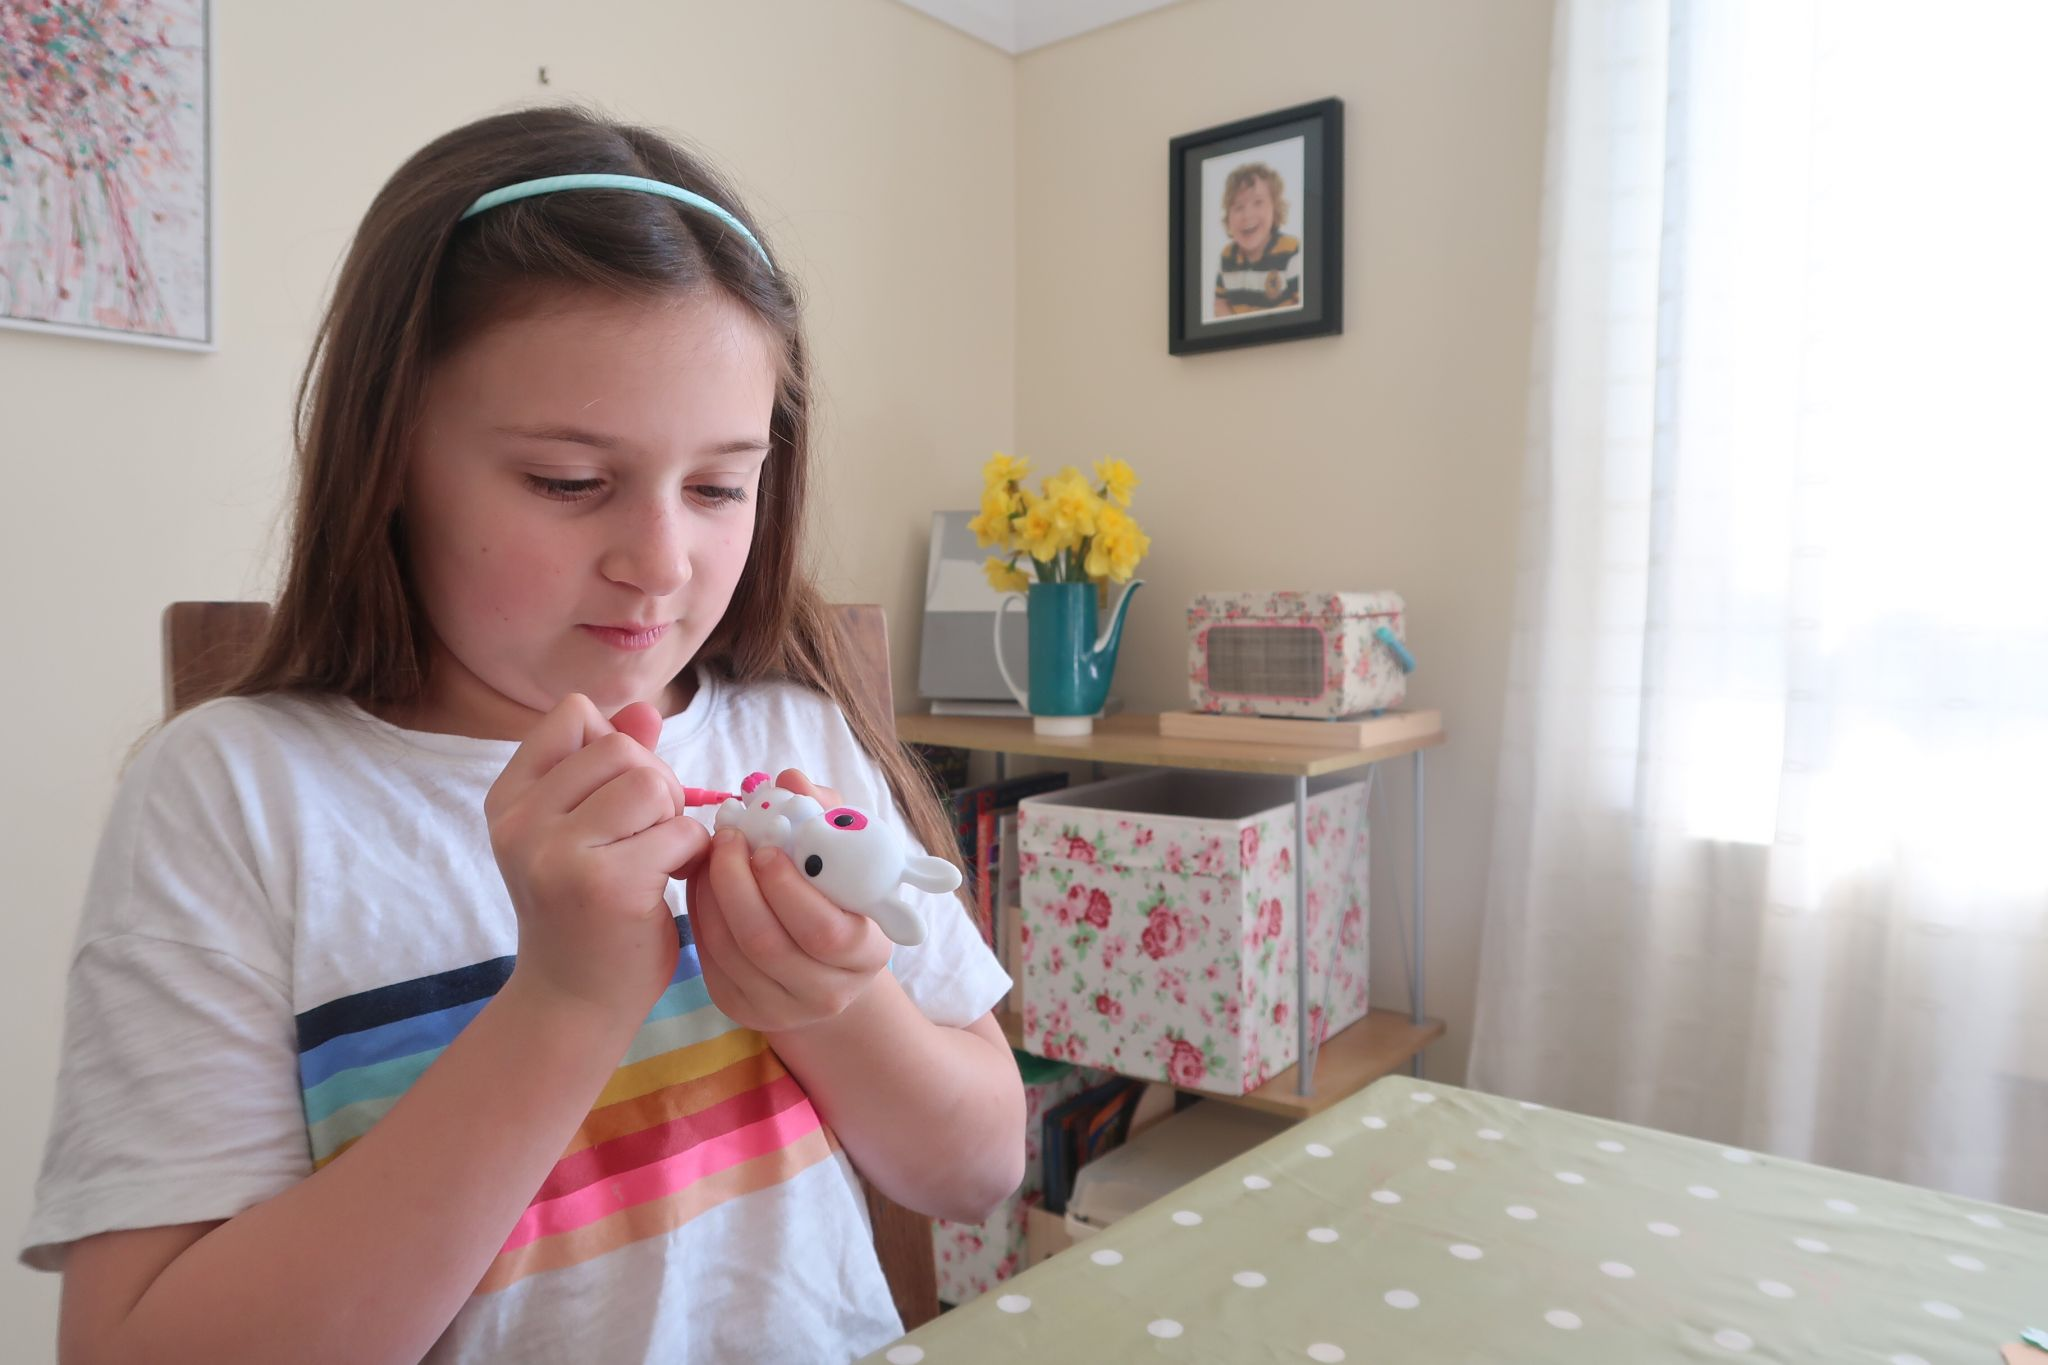 A girl painting a bunny figurine